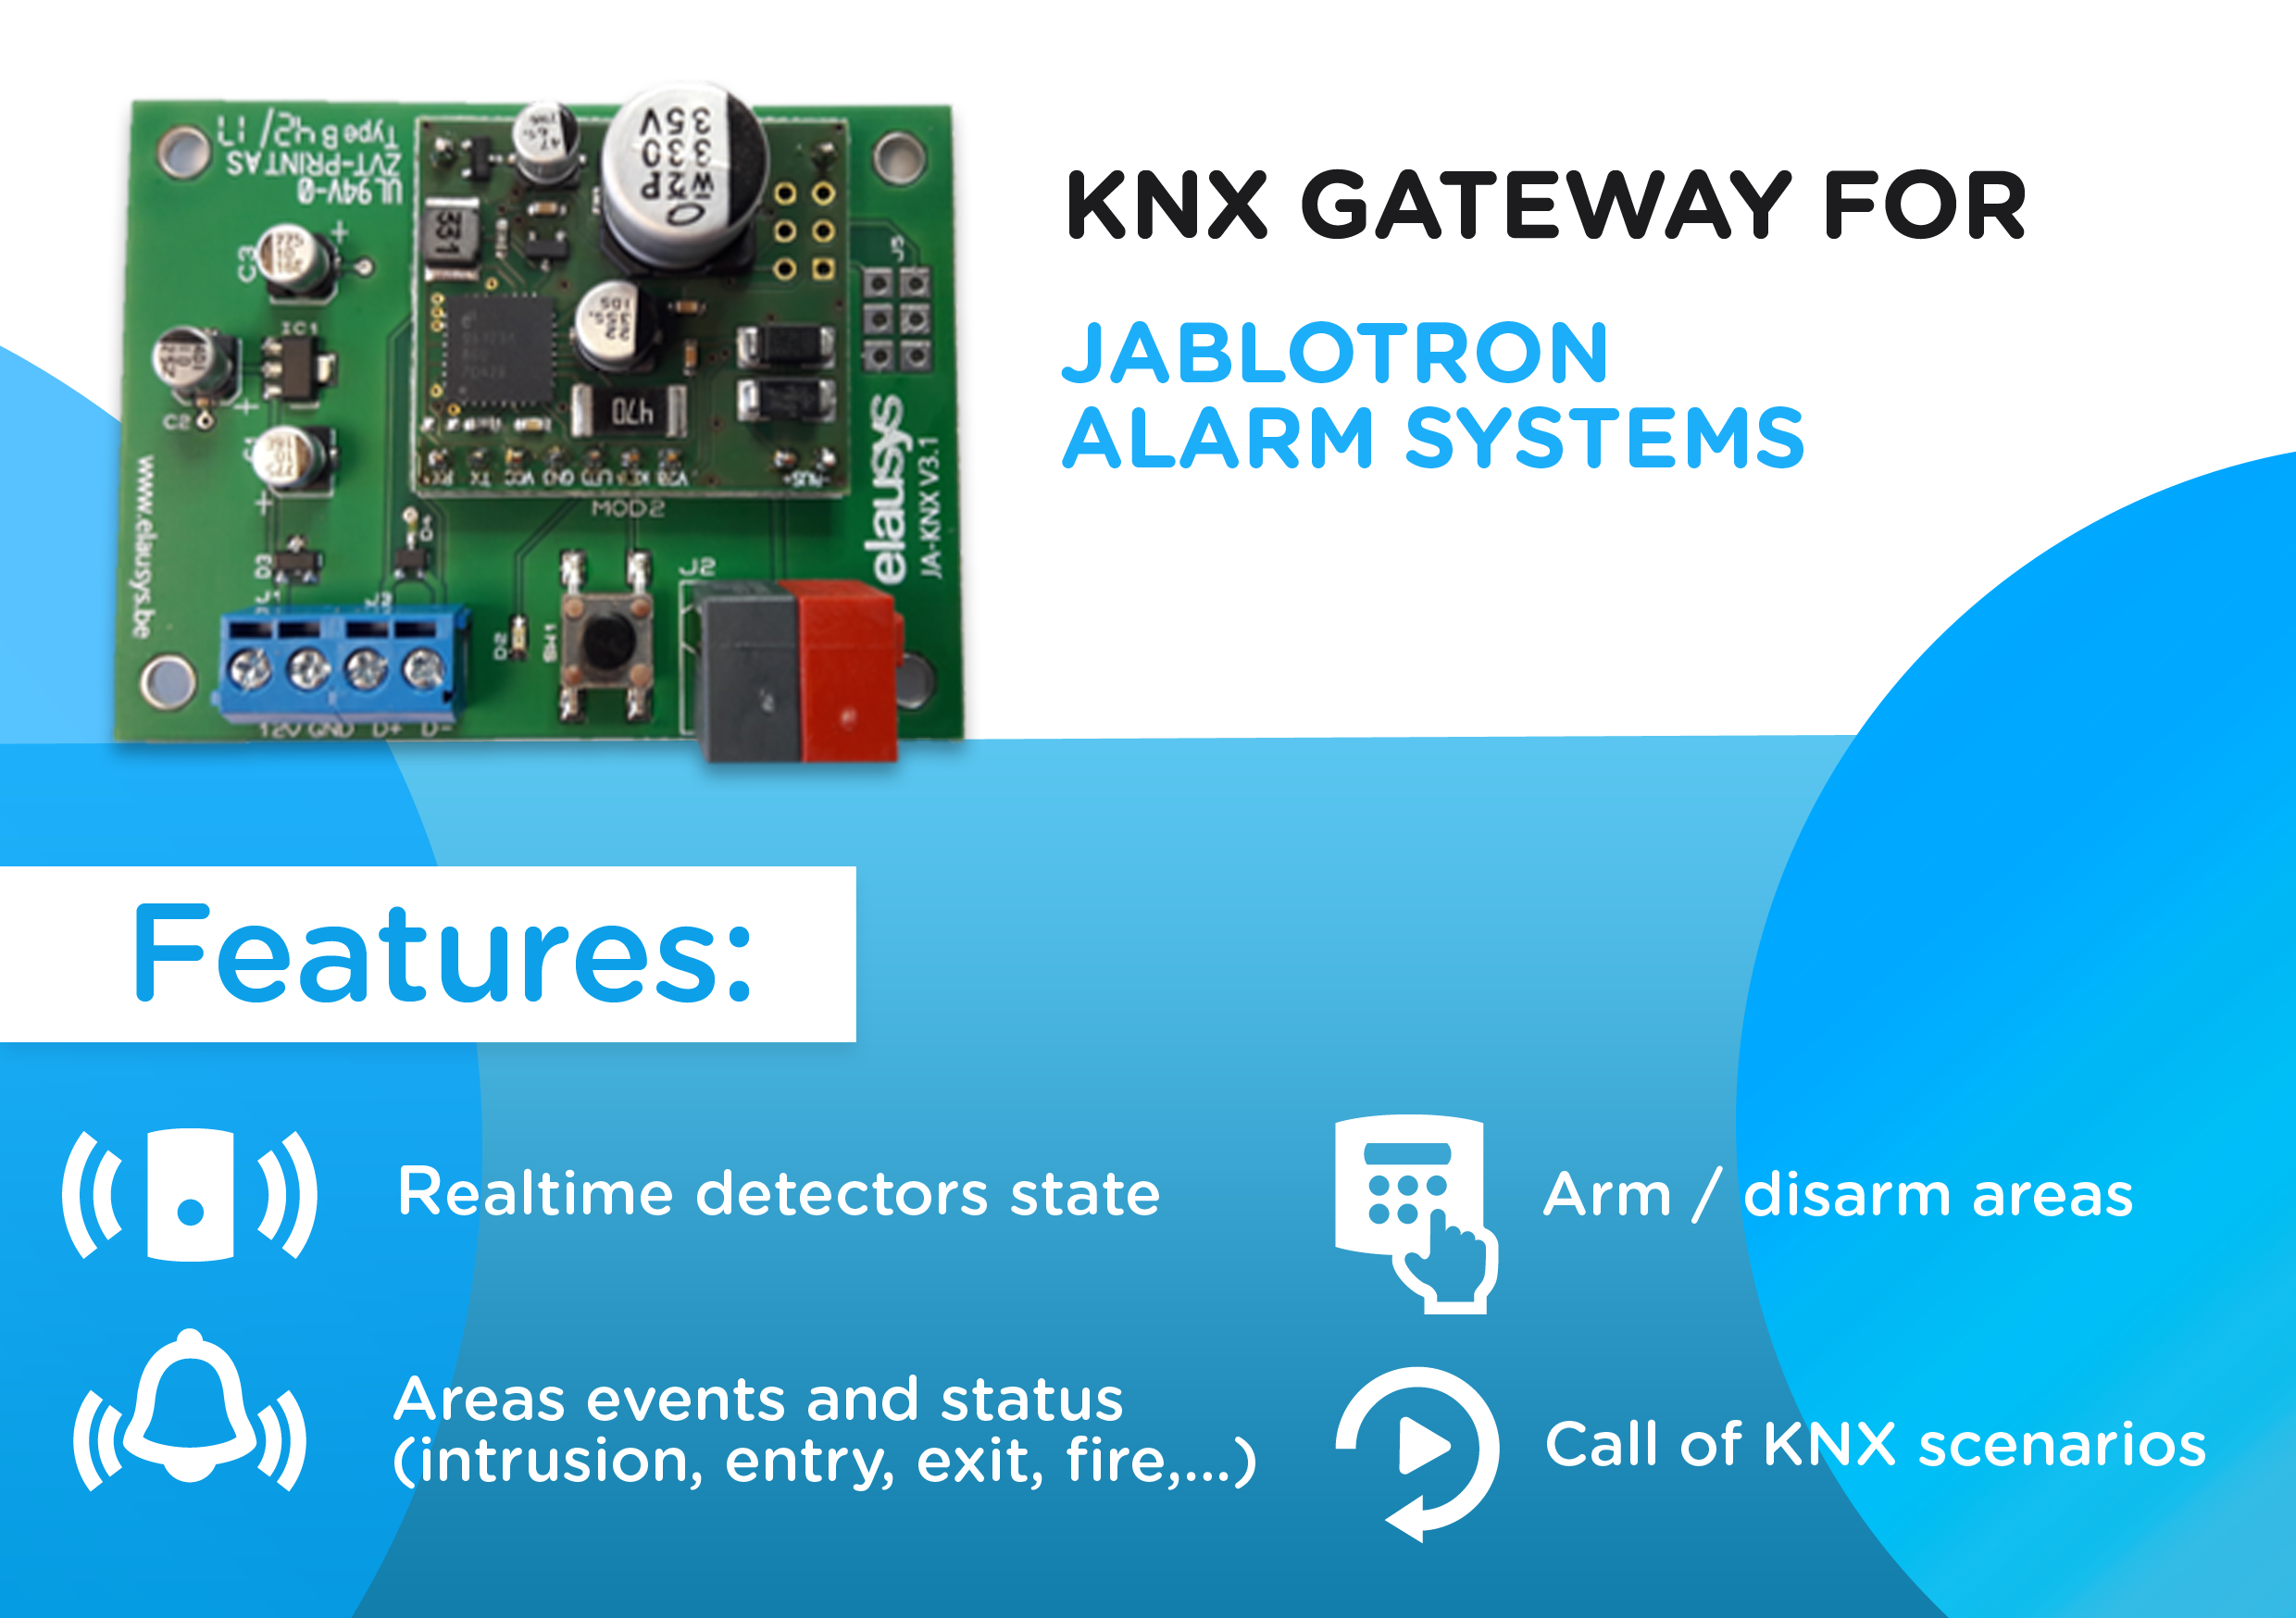 JA-KNX-A5_FLYER-1-Features